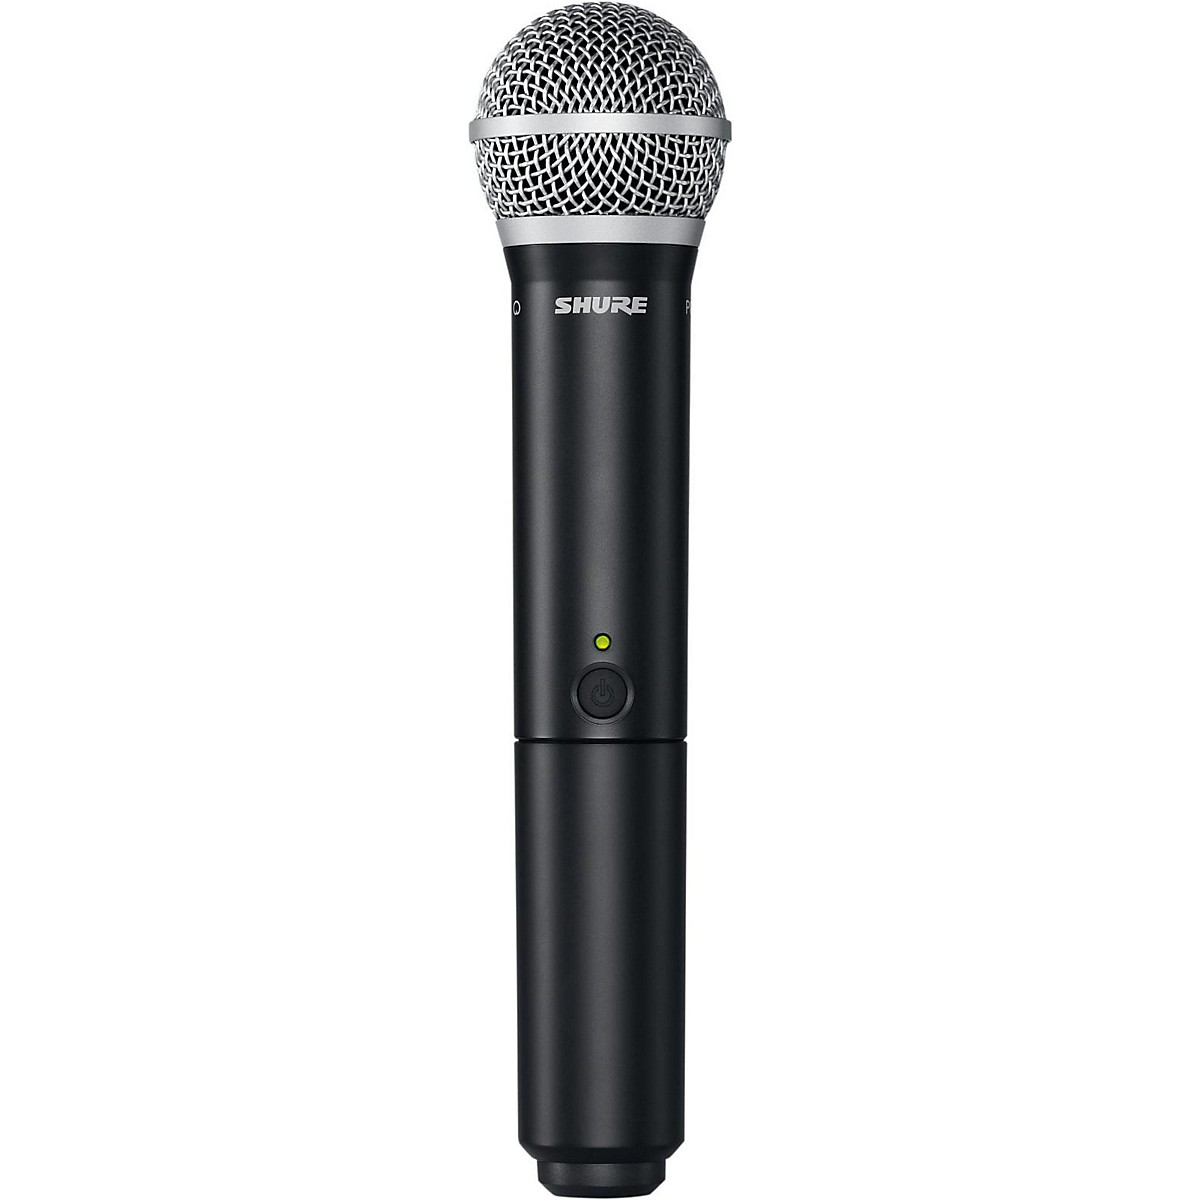 Shure BLX2/PG58 Handheld Wireless Transmitter with PG58 Capsule